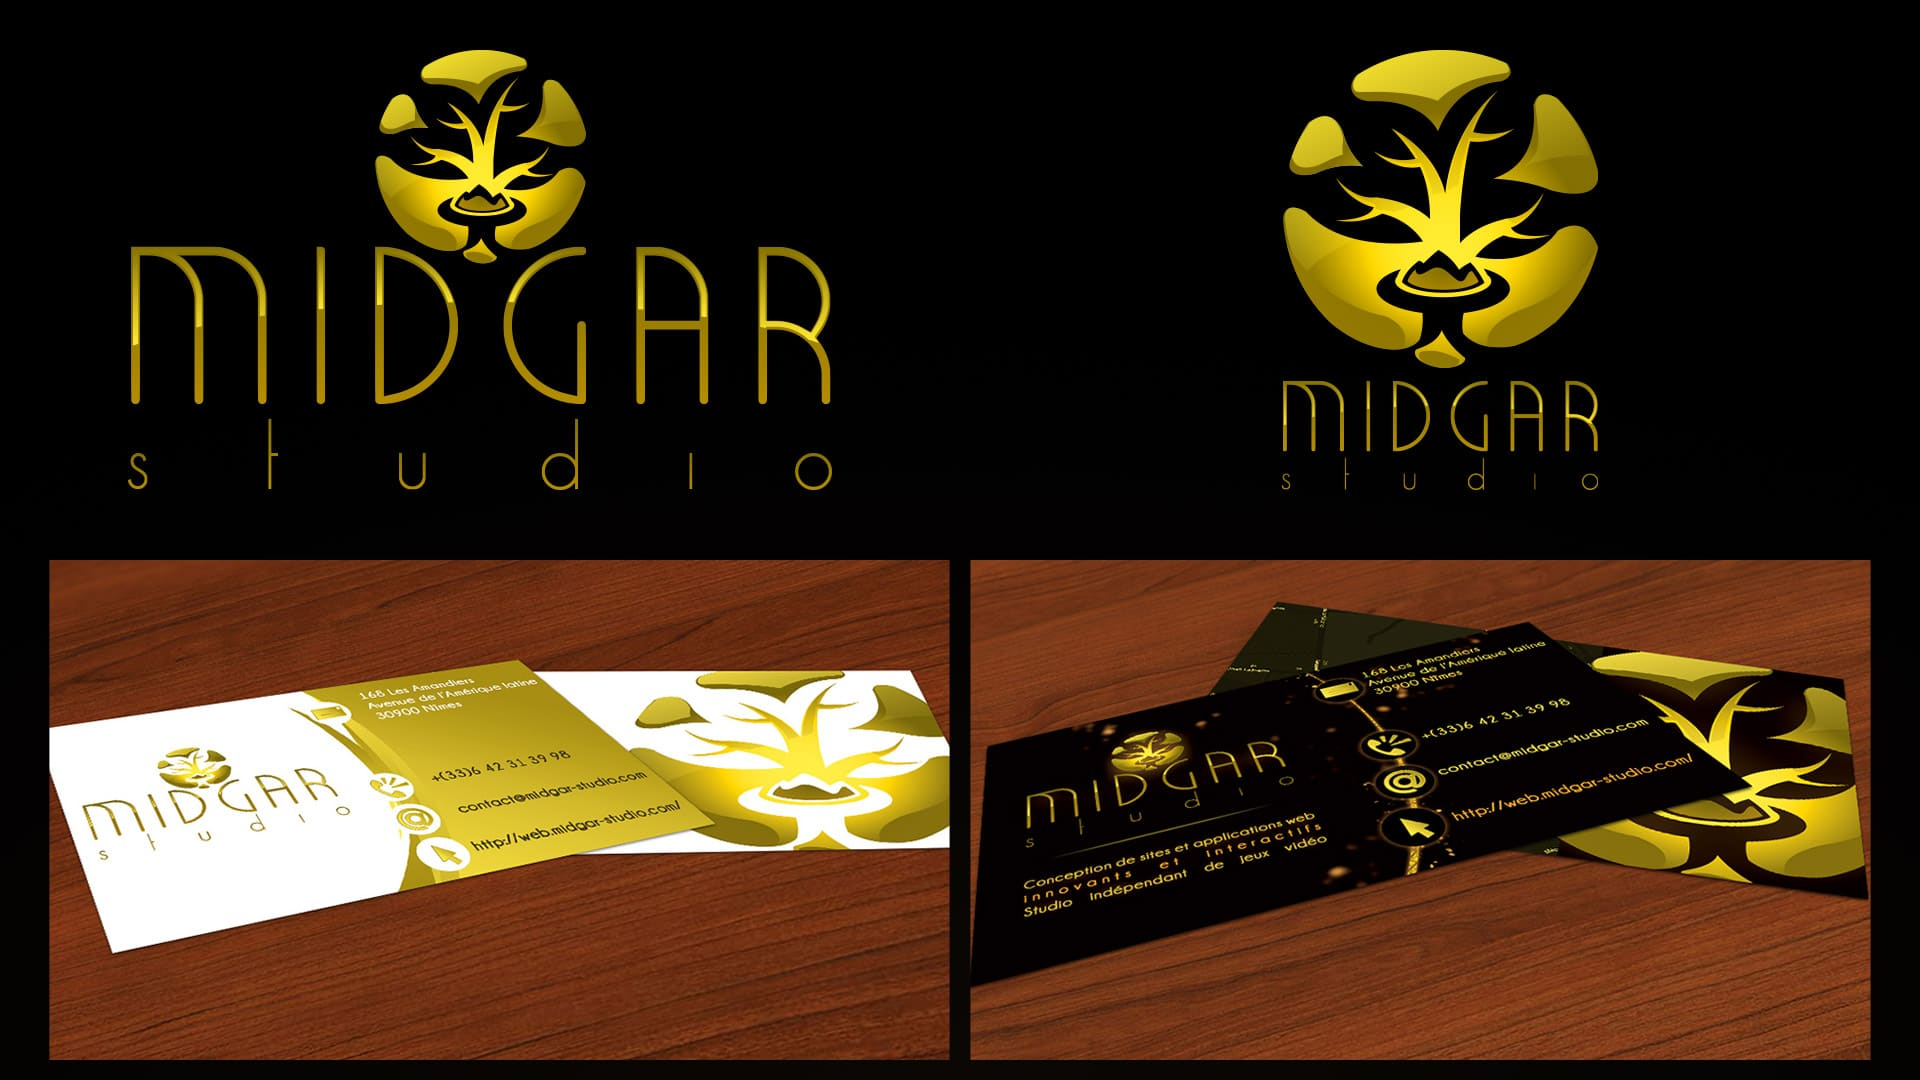 Midgar Studio Corporate Identity - Final logo and business card